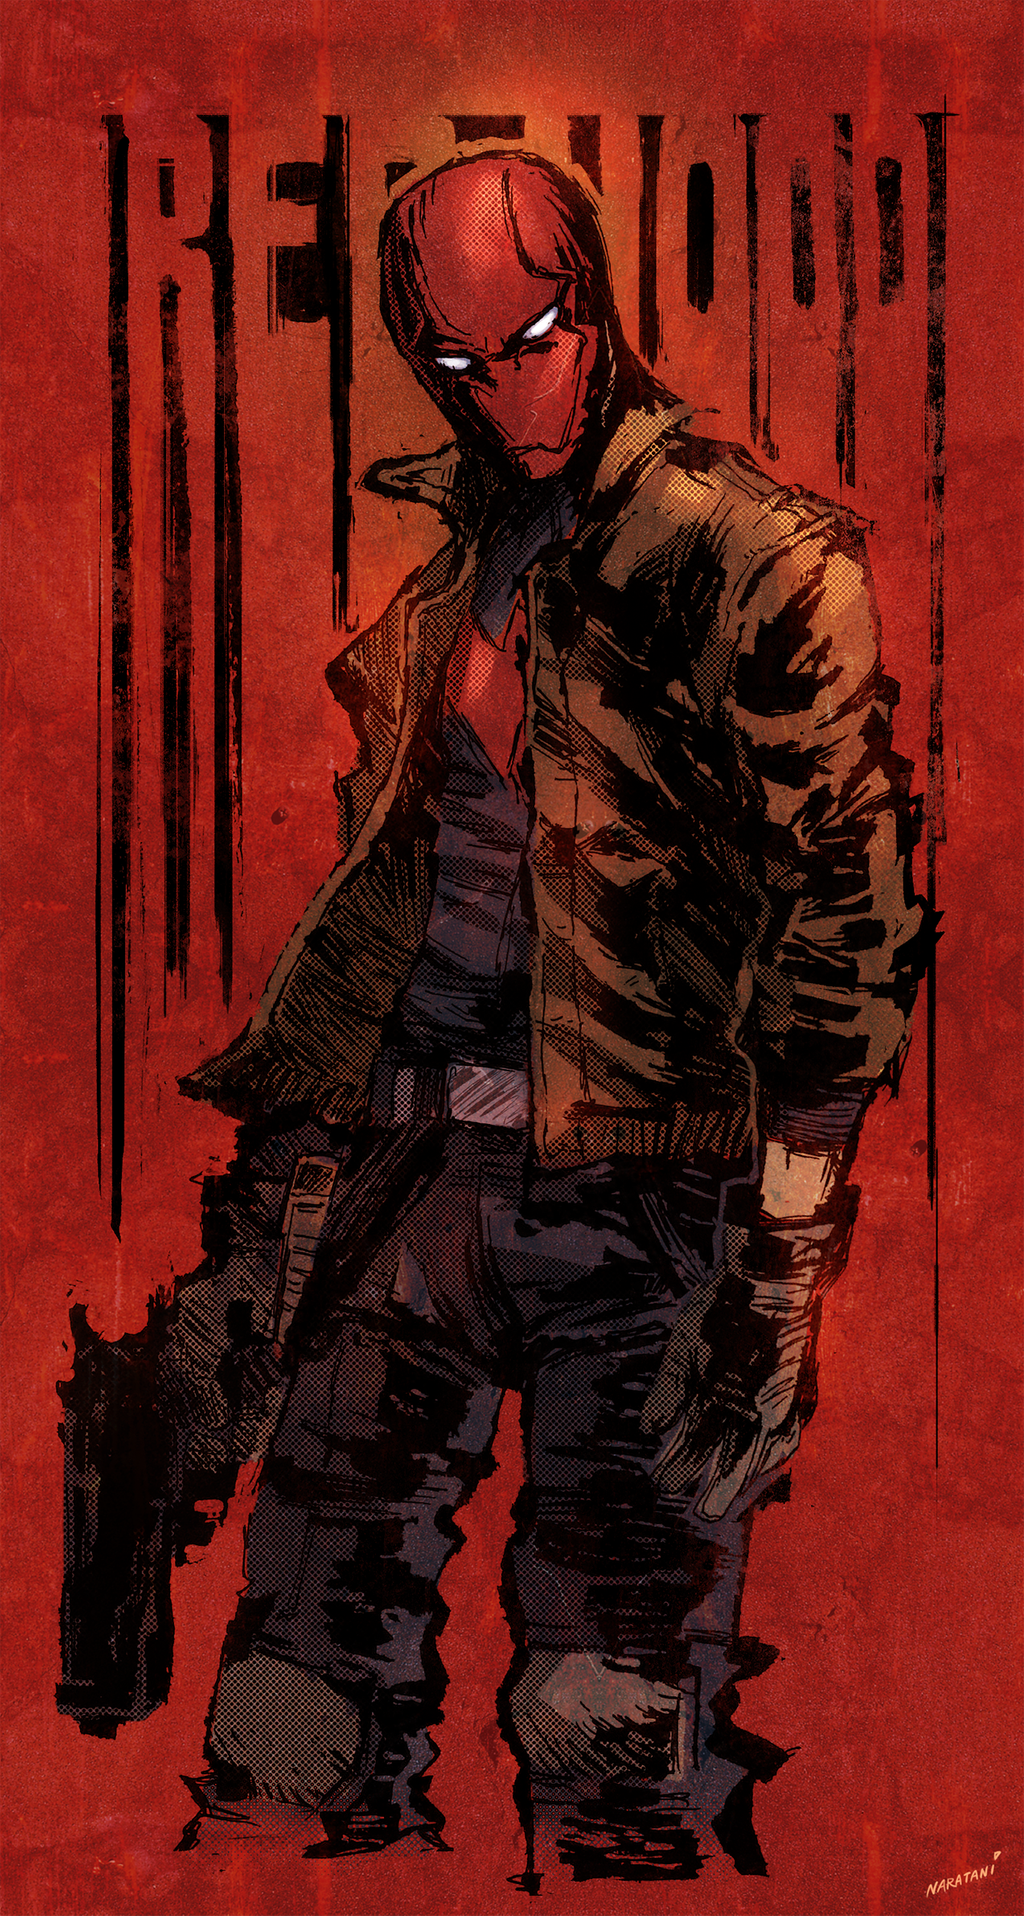 Red Hood Injustice 2 Portrait Png By Darkvoidpictures On Deviantart Red Hood Injustice 2 Red Hood Red Hood Jason Todd